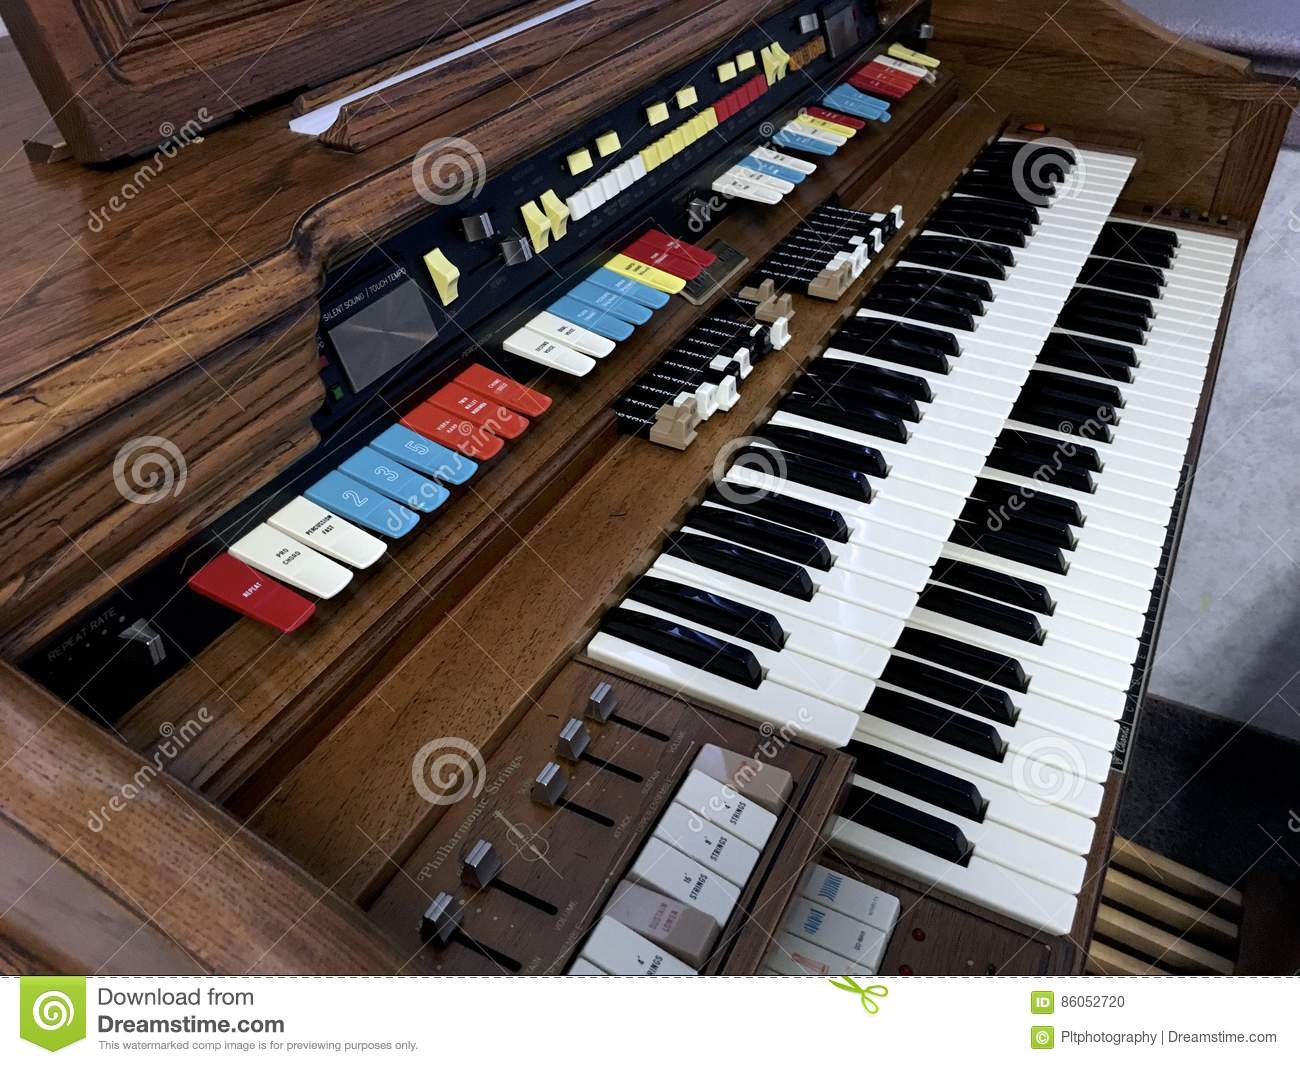 Music Maker stock photo  Image of potential, design, keyboard - 86052720